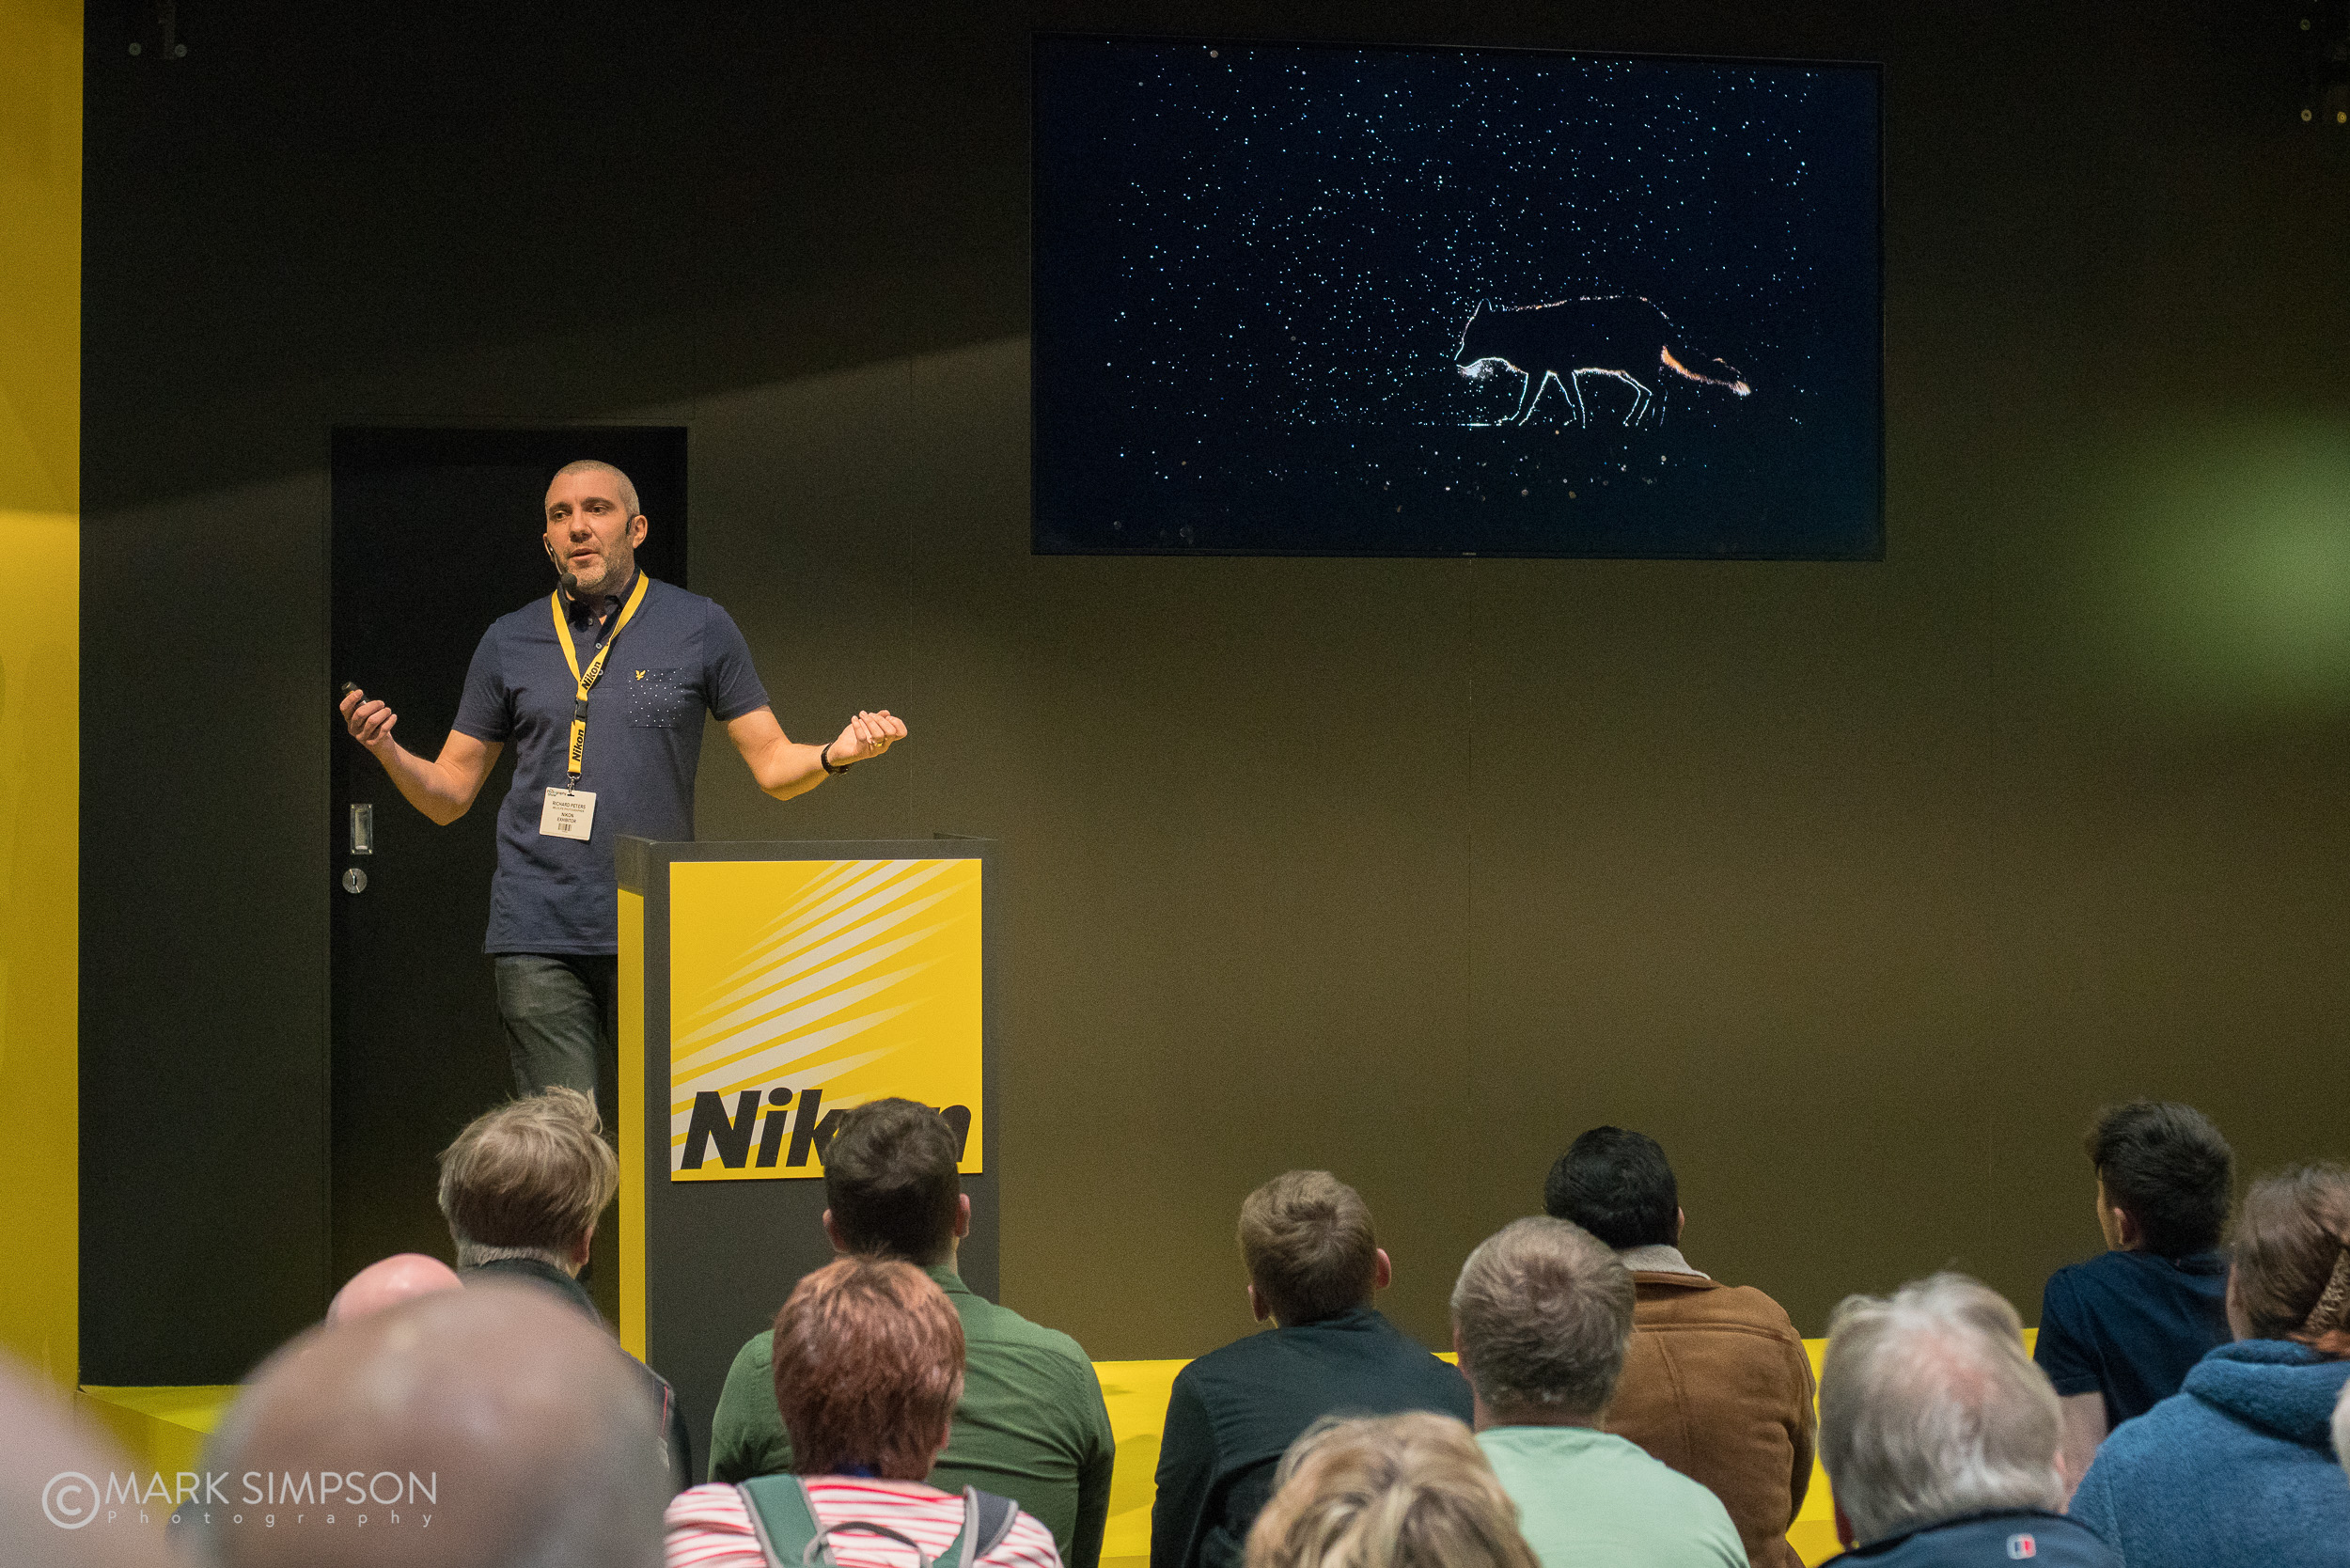 Wildlife photographer Richard Peters on the Nikon School Stage. (Sony A7R II, Carl Zeiss Planar T* 50mm f/1.4)